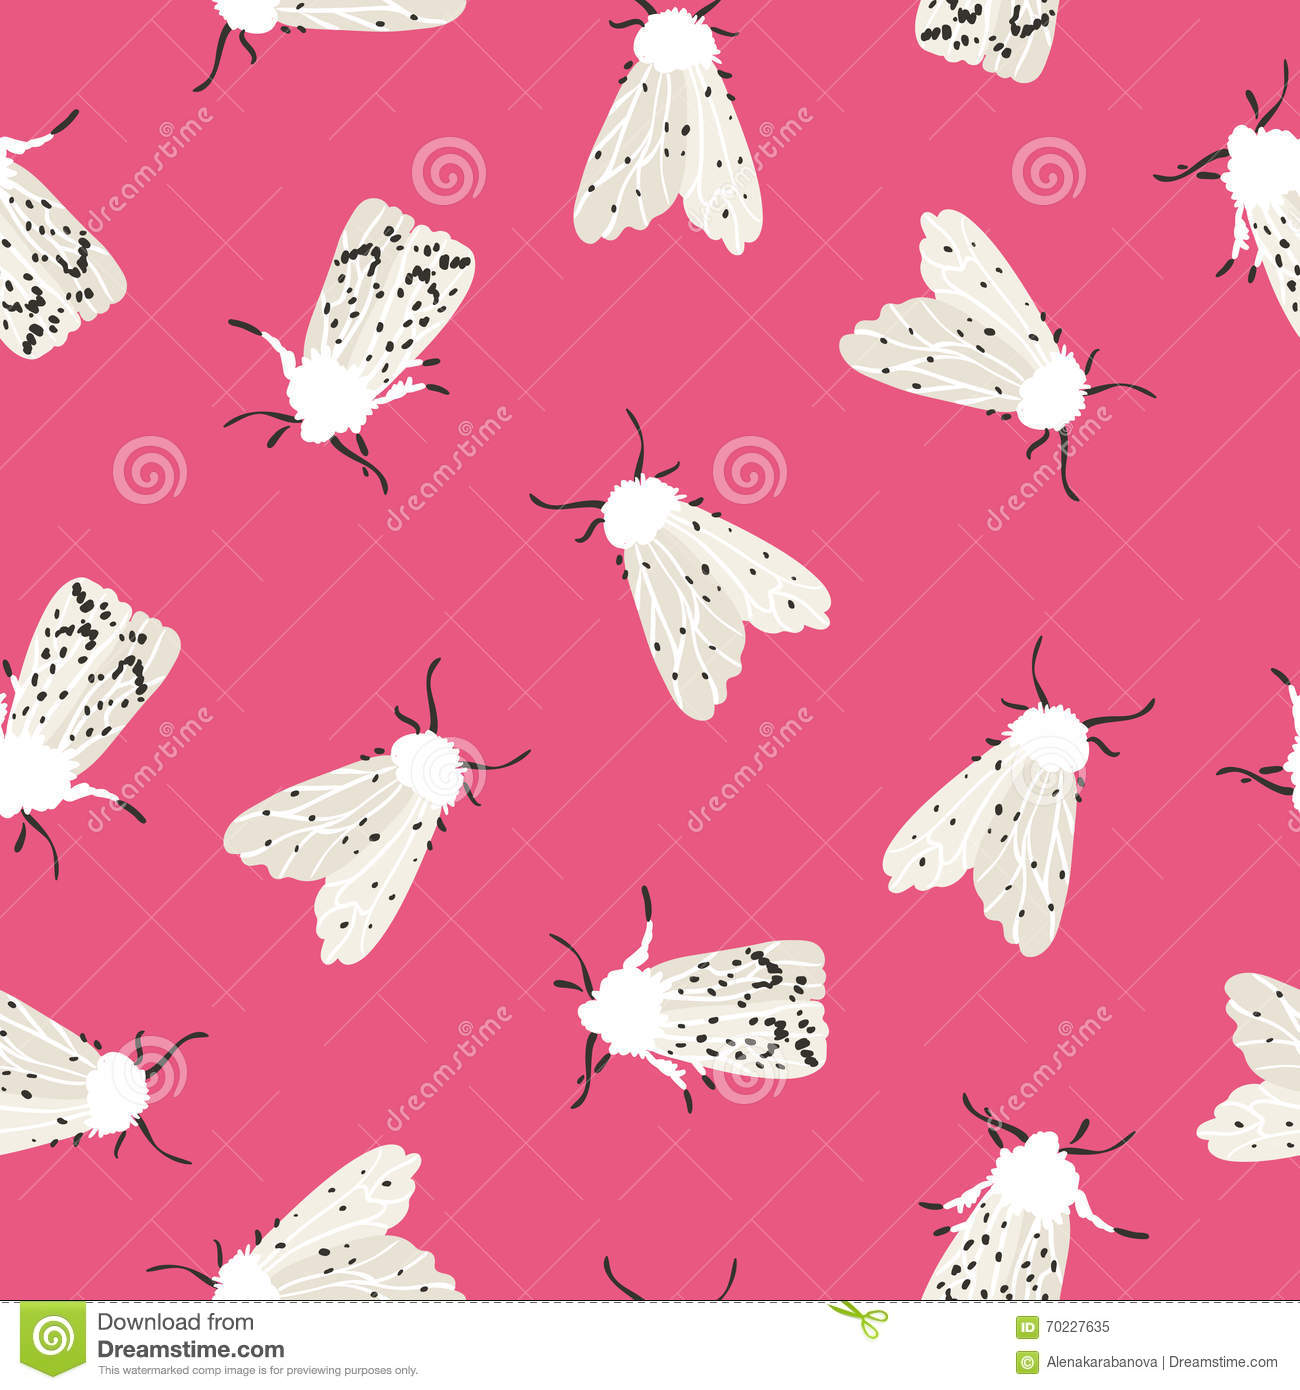 Unusual hipster seamless pattern with clothes moth.